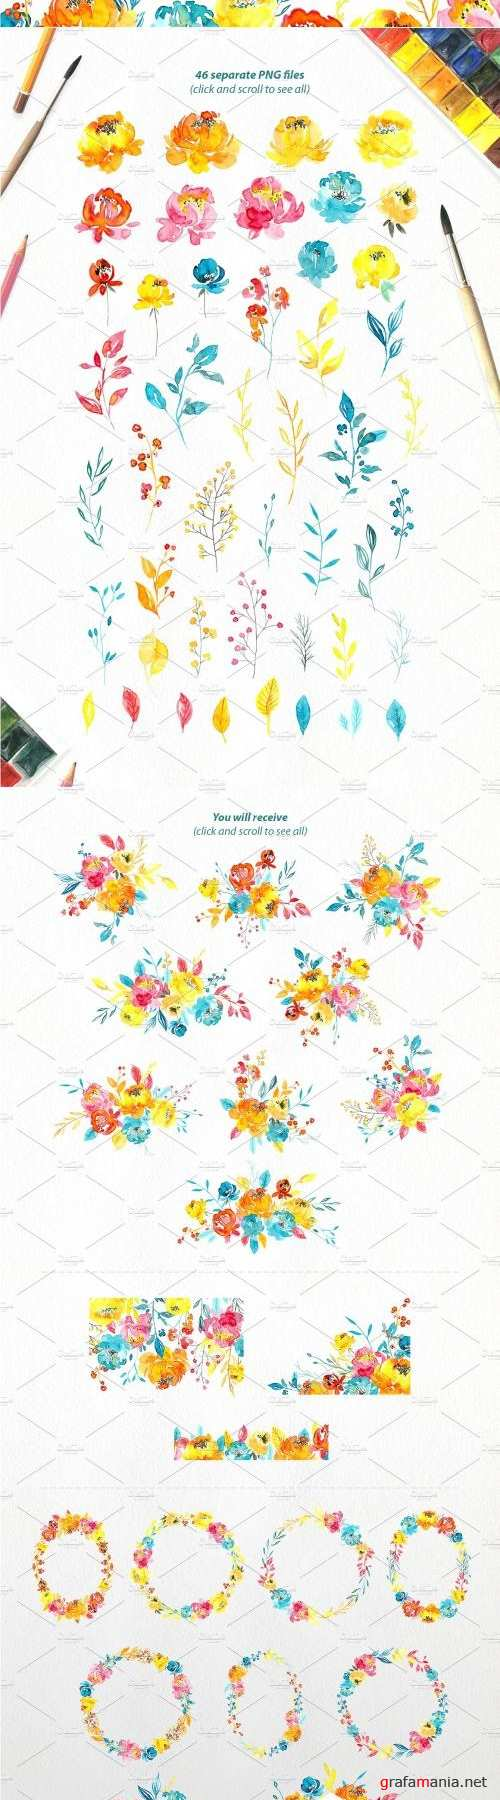 Watercolor Summer Flowers Collection - 2536576